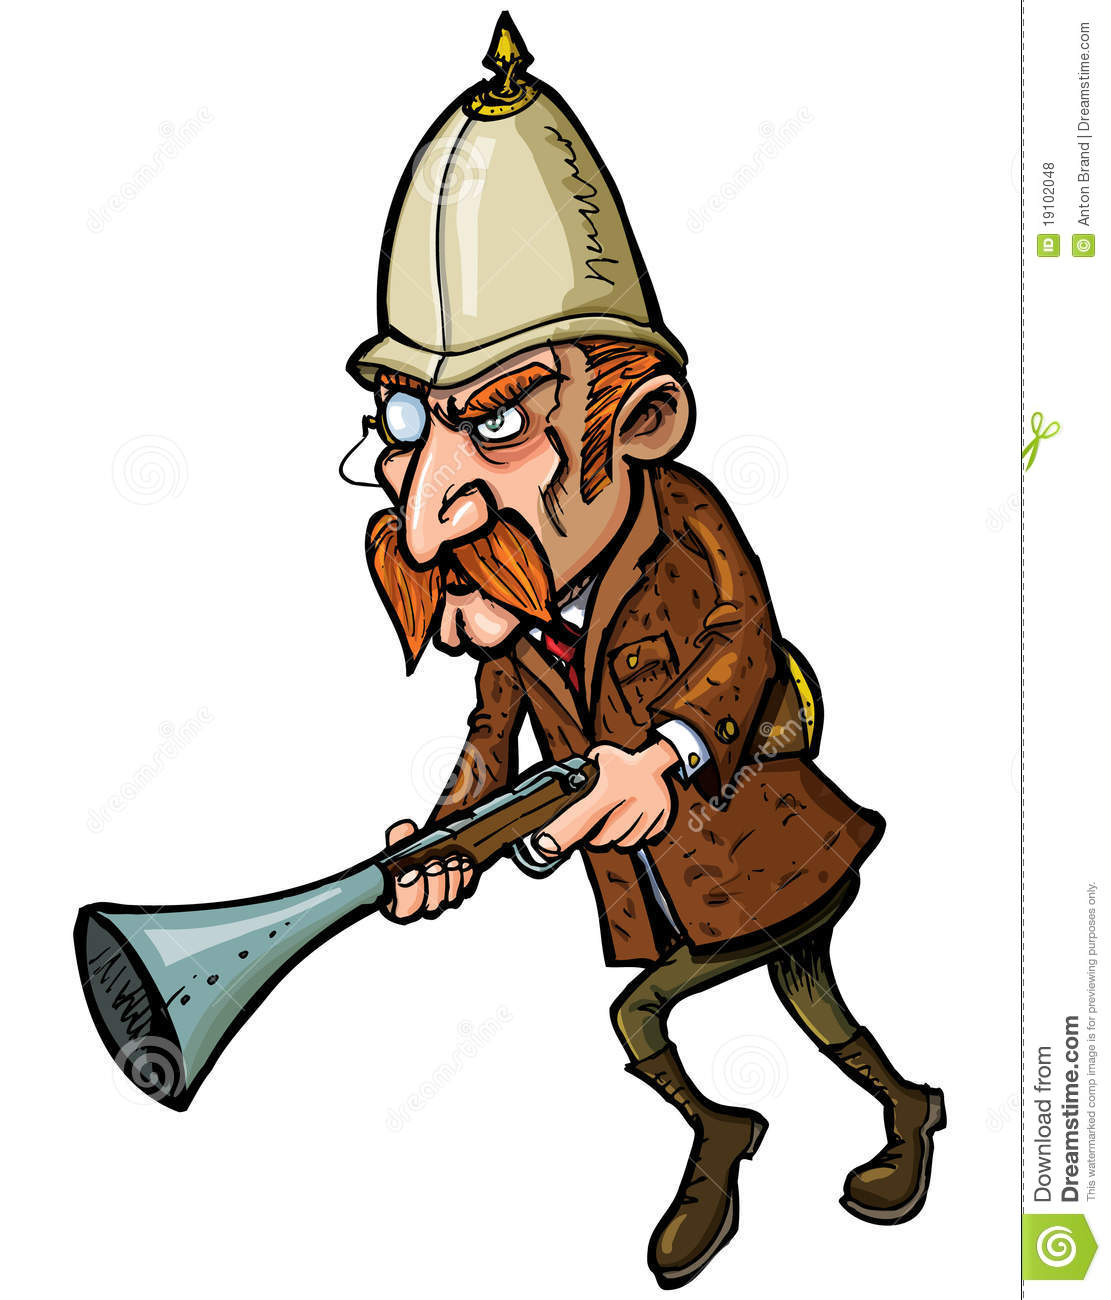 Cartoon hunter with a blunderbuss royalty free stock photos image